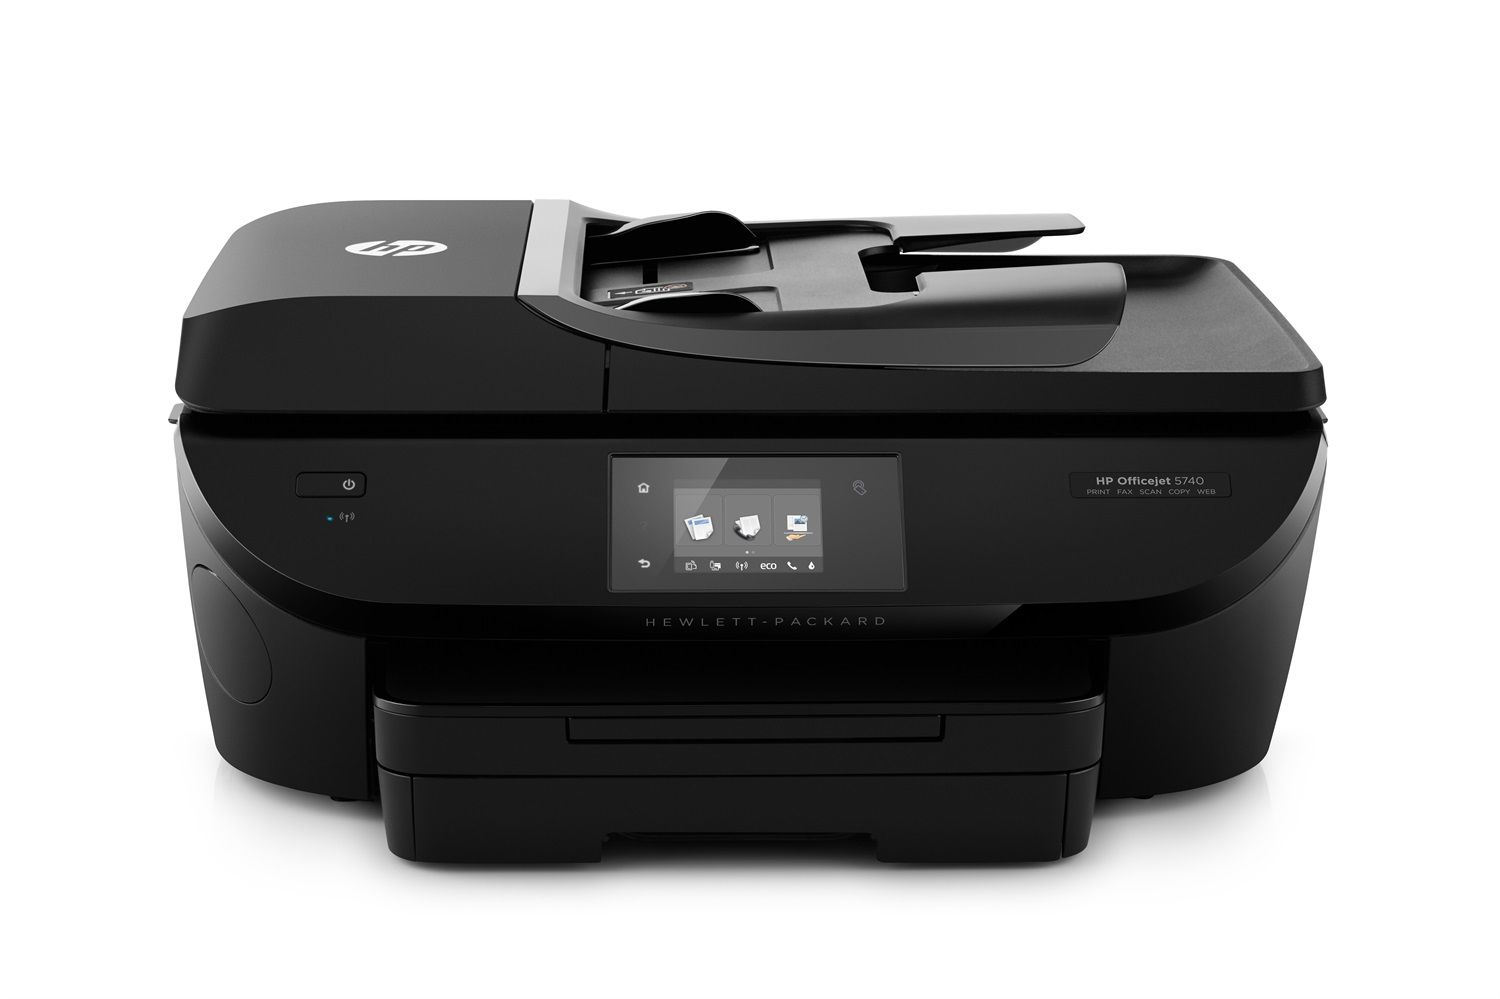 Hp officejet 5740 e all in one